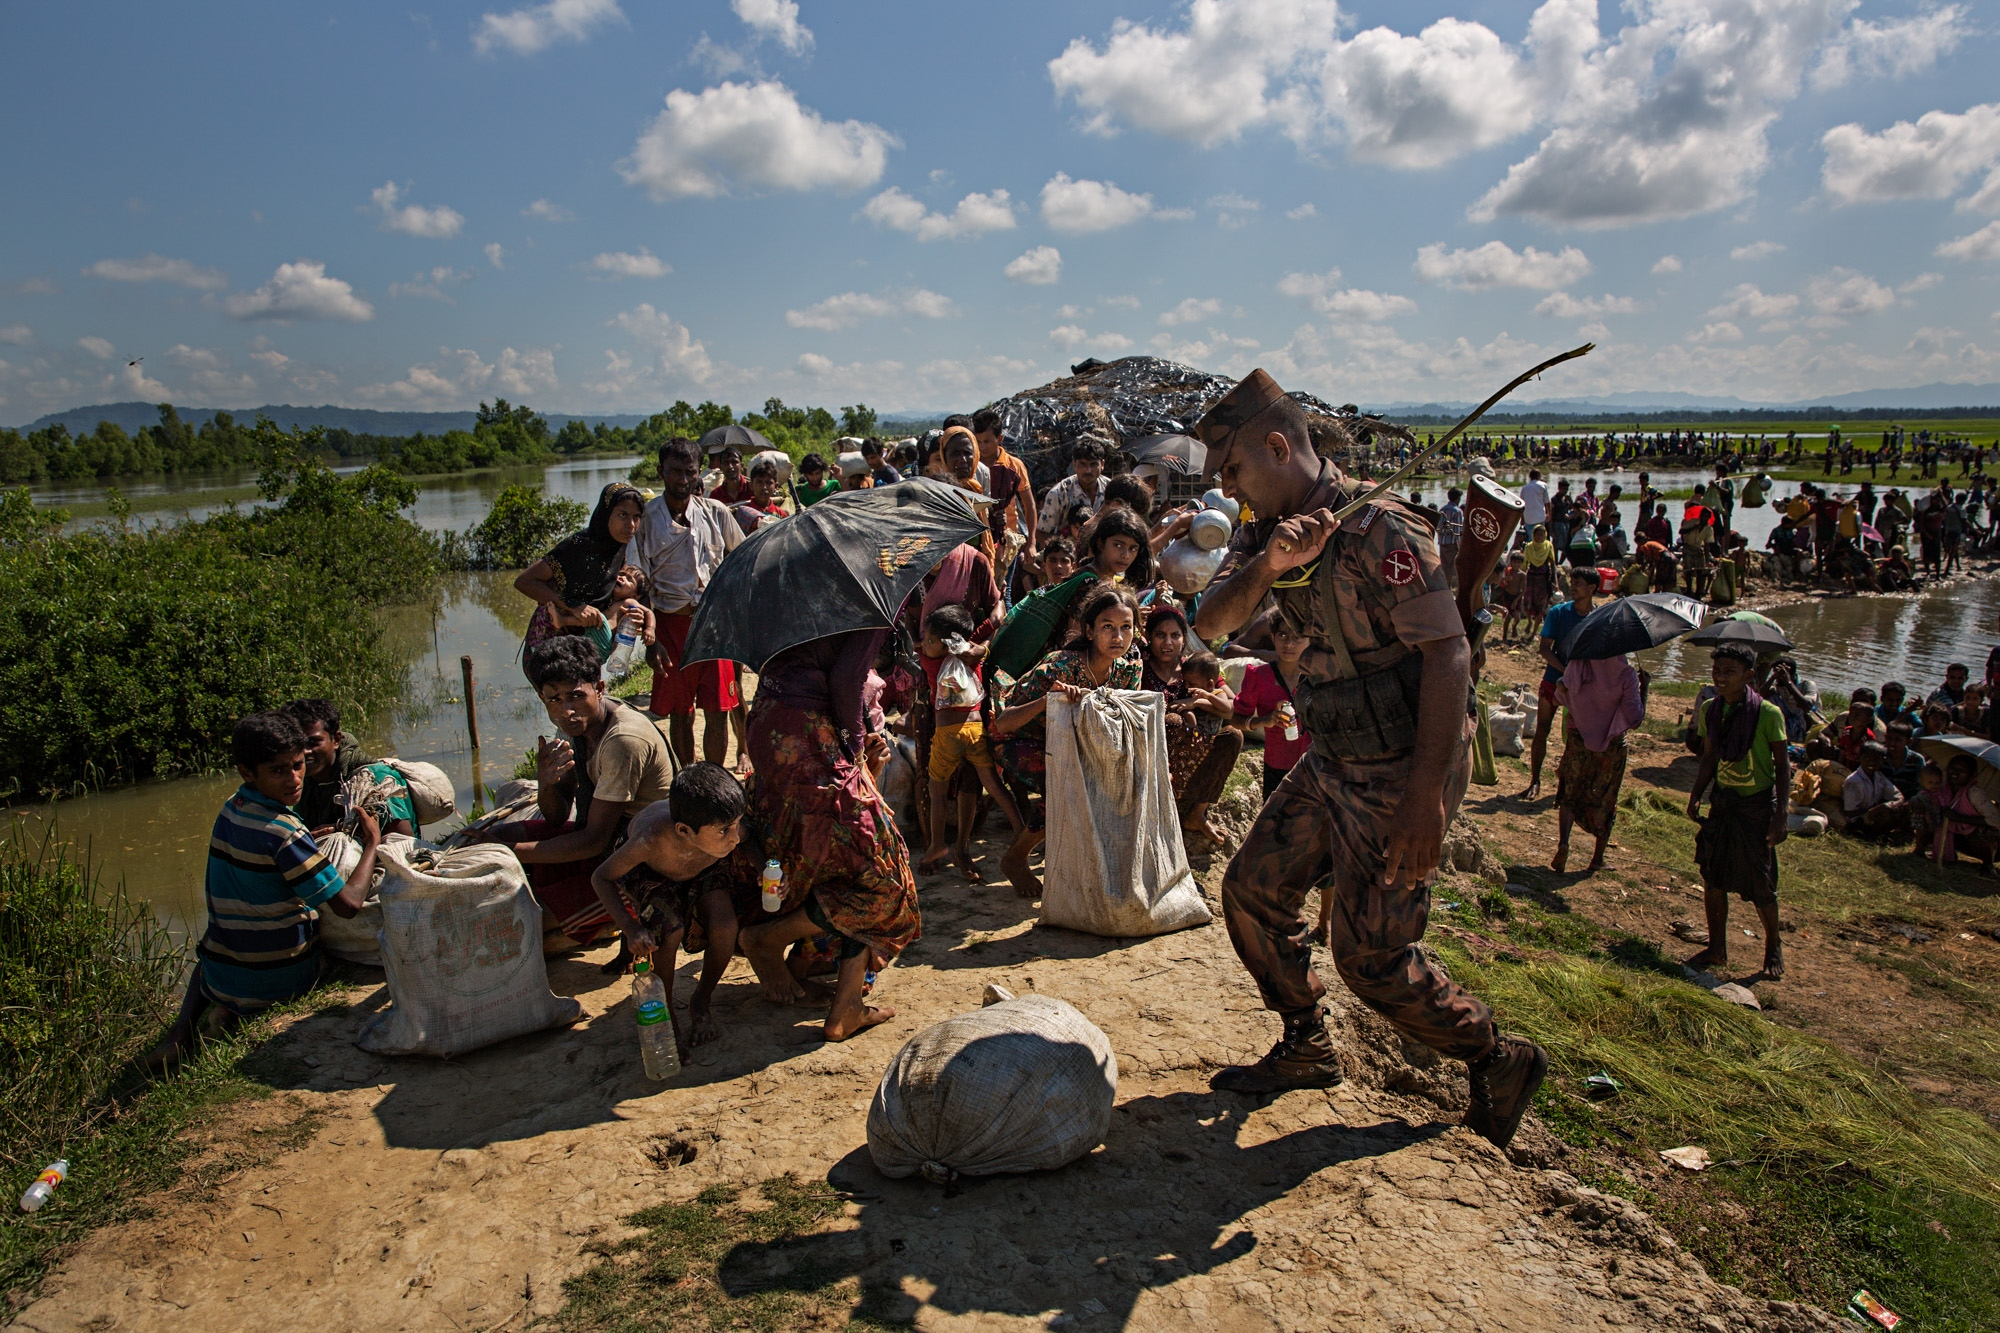 Rohingya refugees are kept in line with a stick wielded by a Border Guard Bangladesh (BGB) member after crossing the Naf River from Myanmar into Bangladesh. Many had been walking for weeks and were suffering from malnutrition and dehydration. Temperatures reach well over 100 degrees Farenheit.